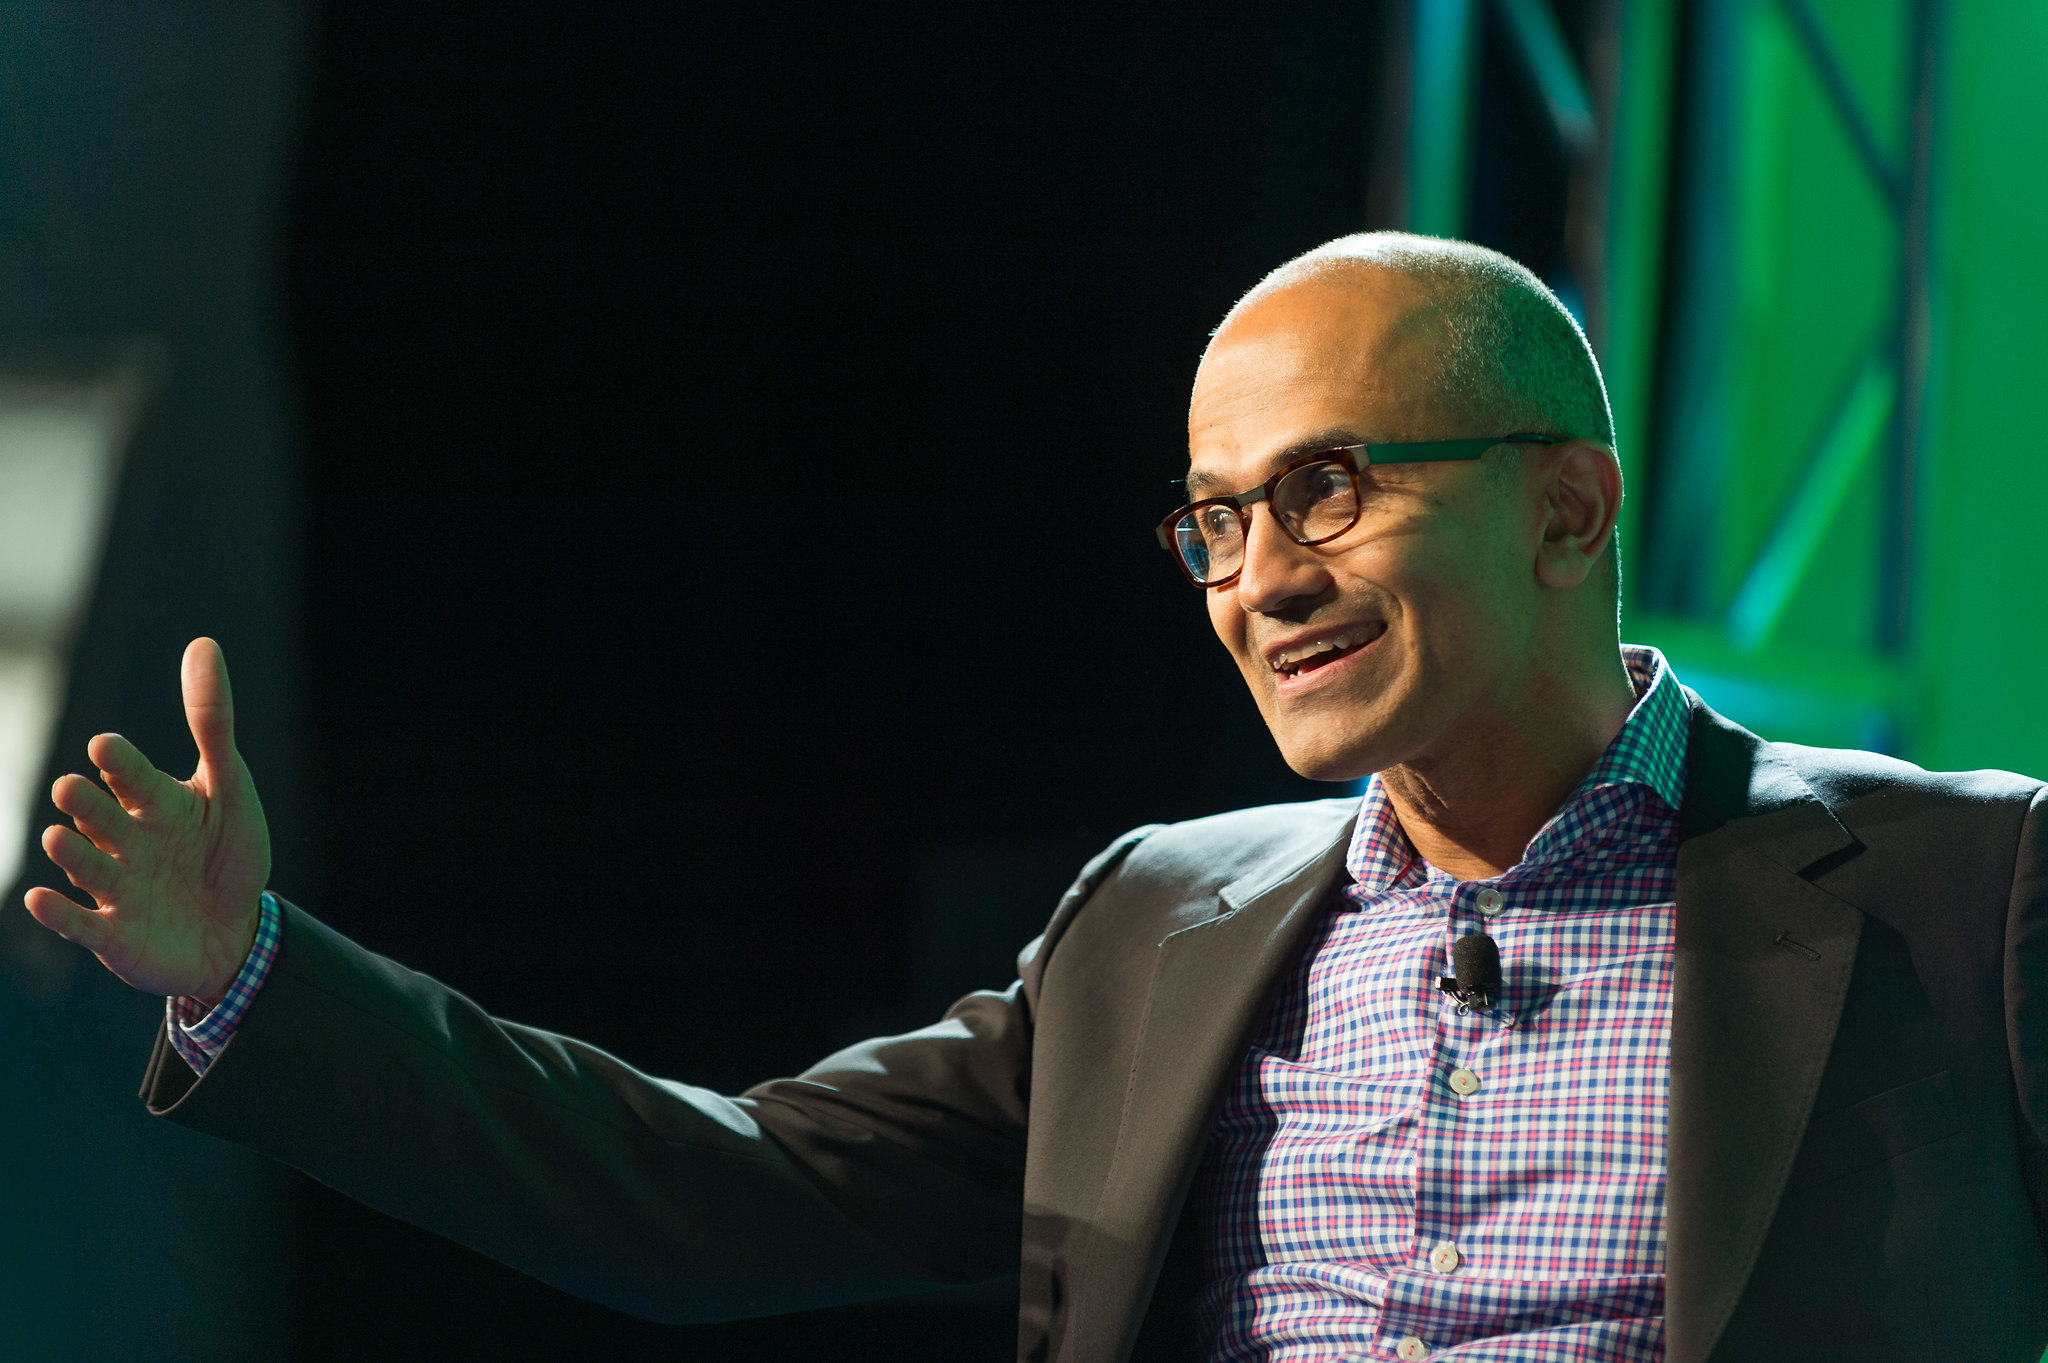 Strong cloud growth helps boost Microsoft's market cap over